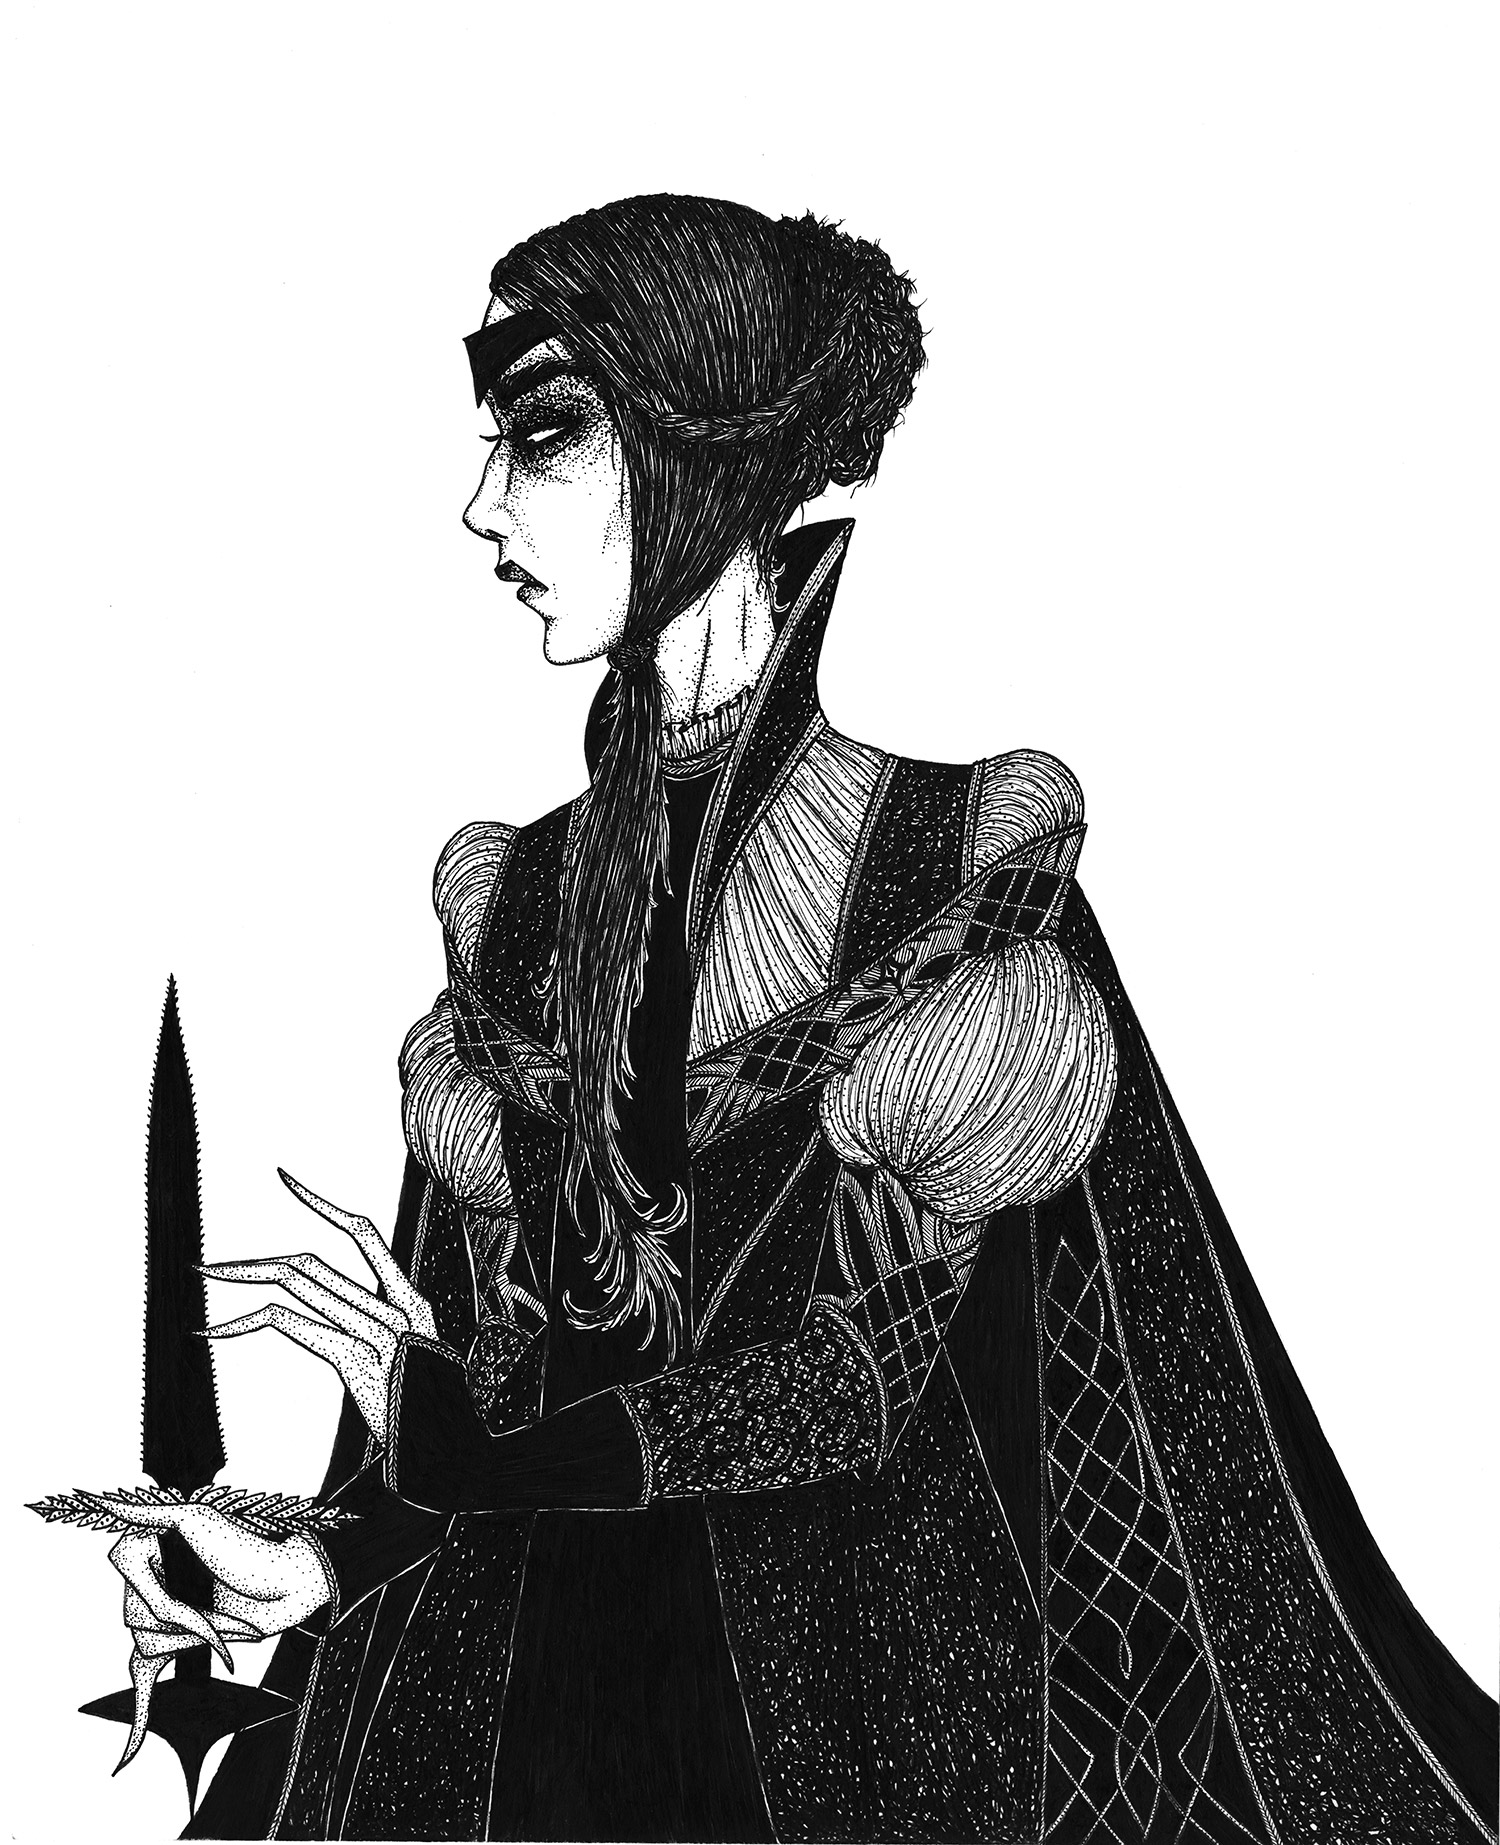 Hogan Mclaughlin - illustration, Lady Macbeth